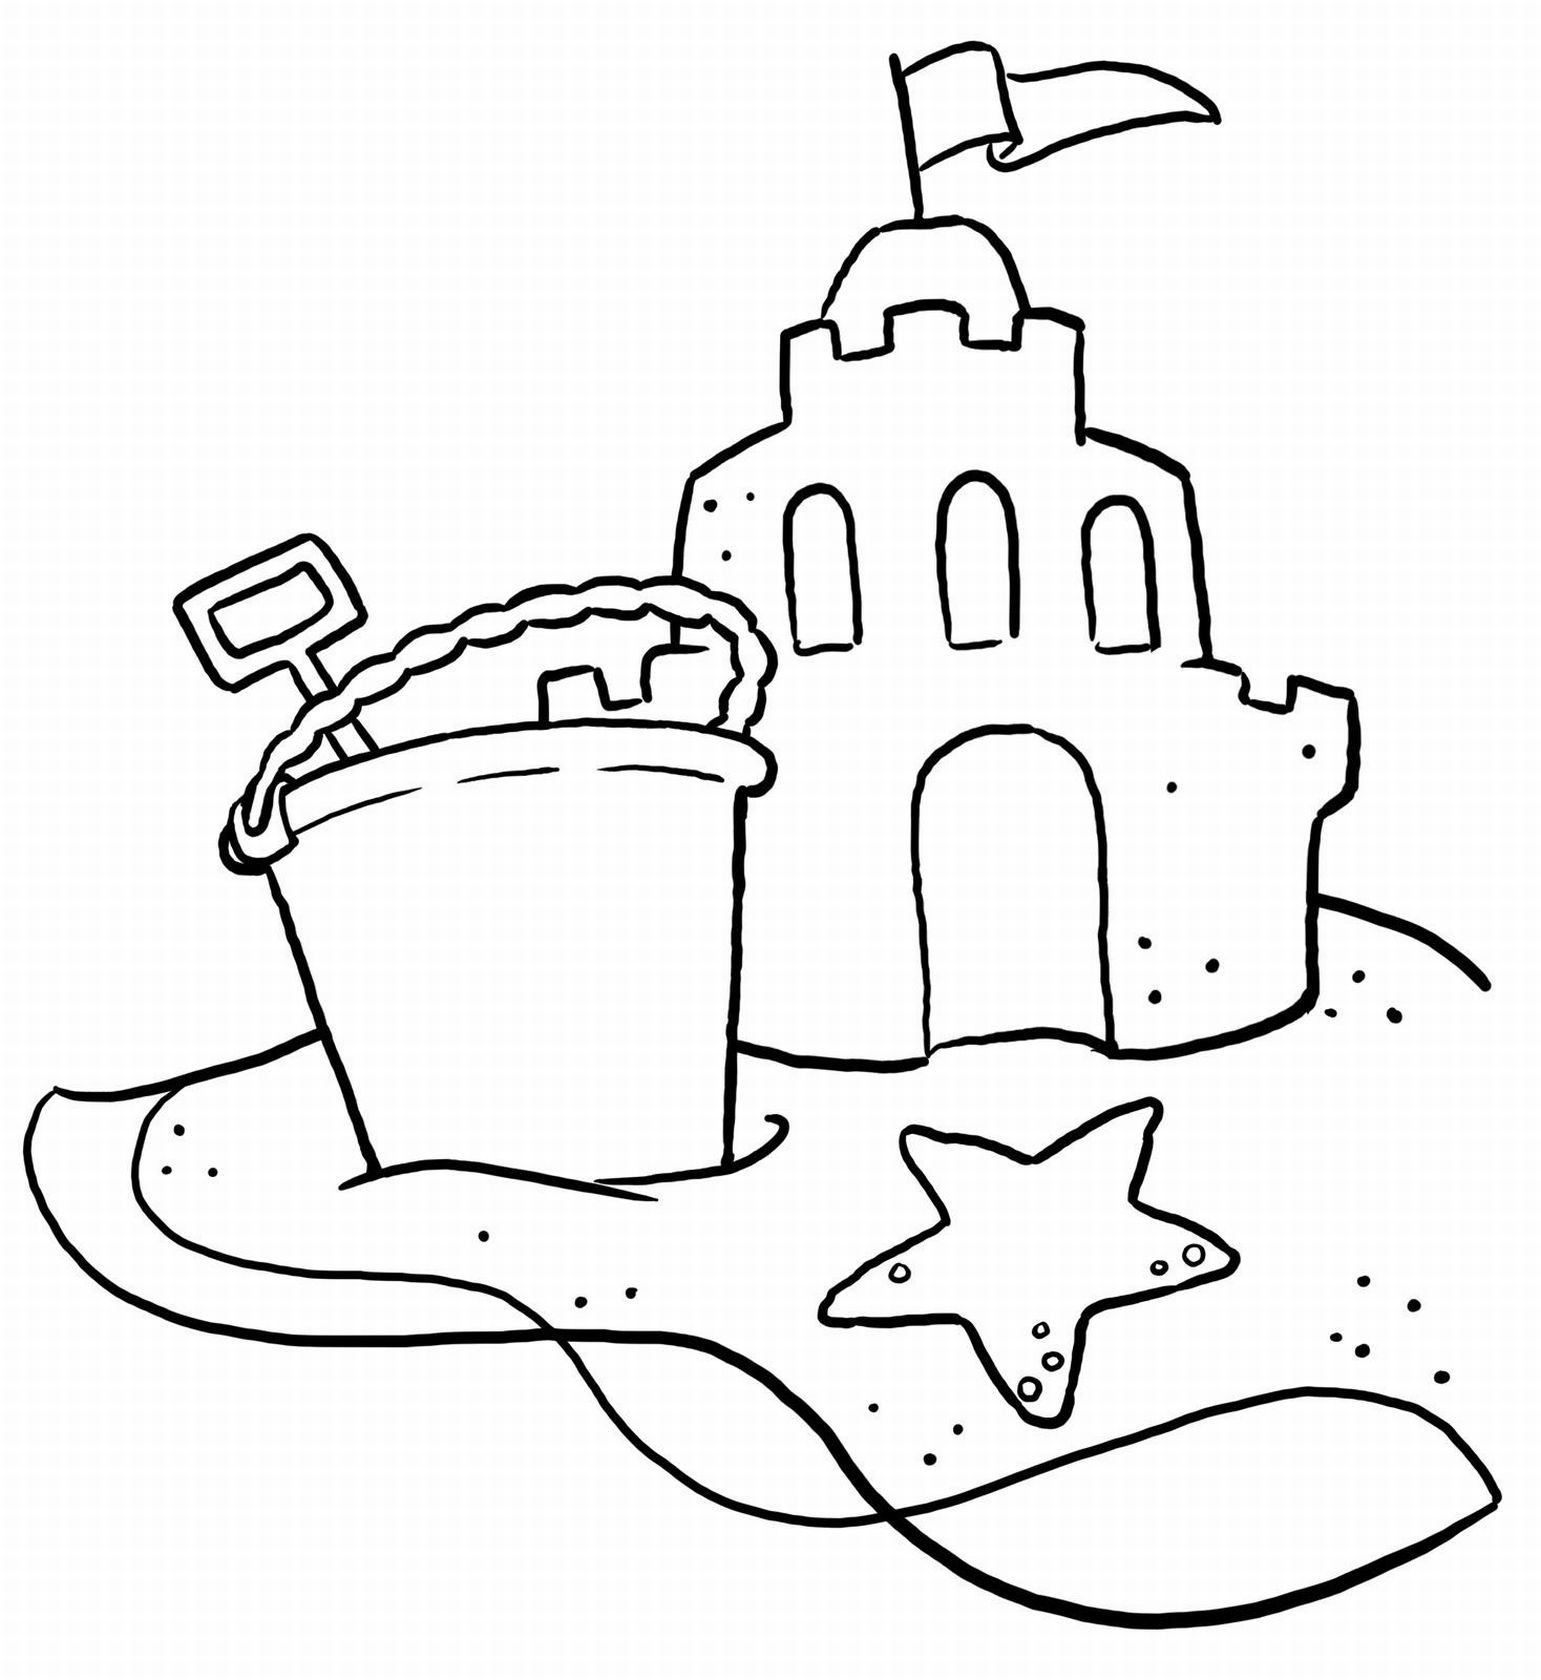 coloring beach pages beach coloring pages beach scenes activities pages coloring beach